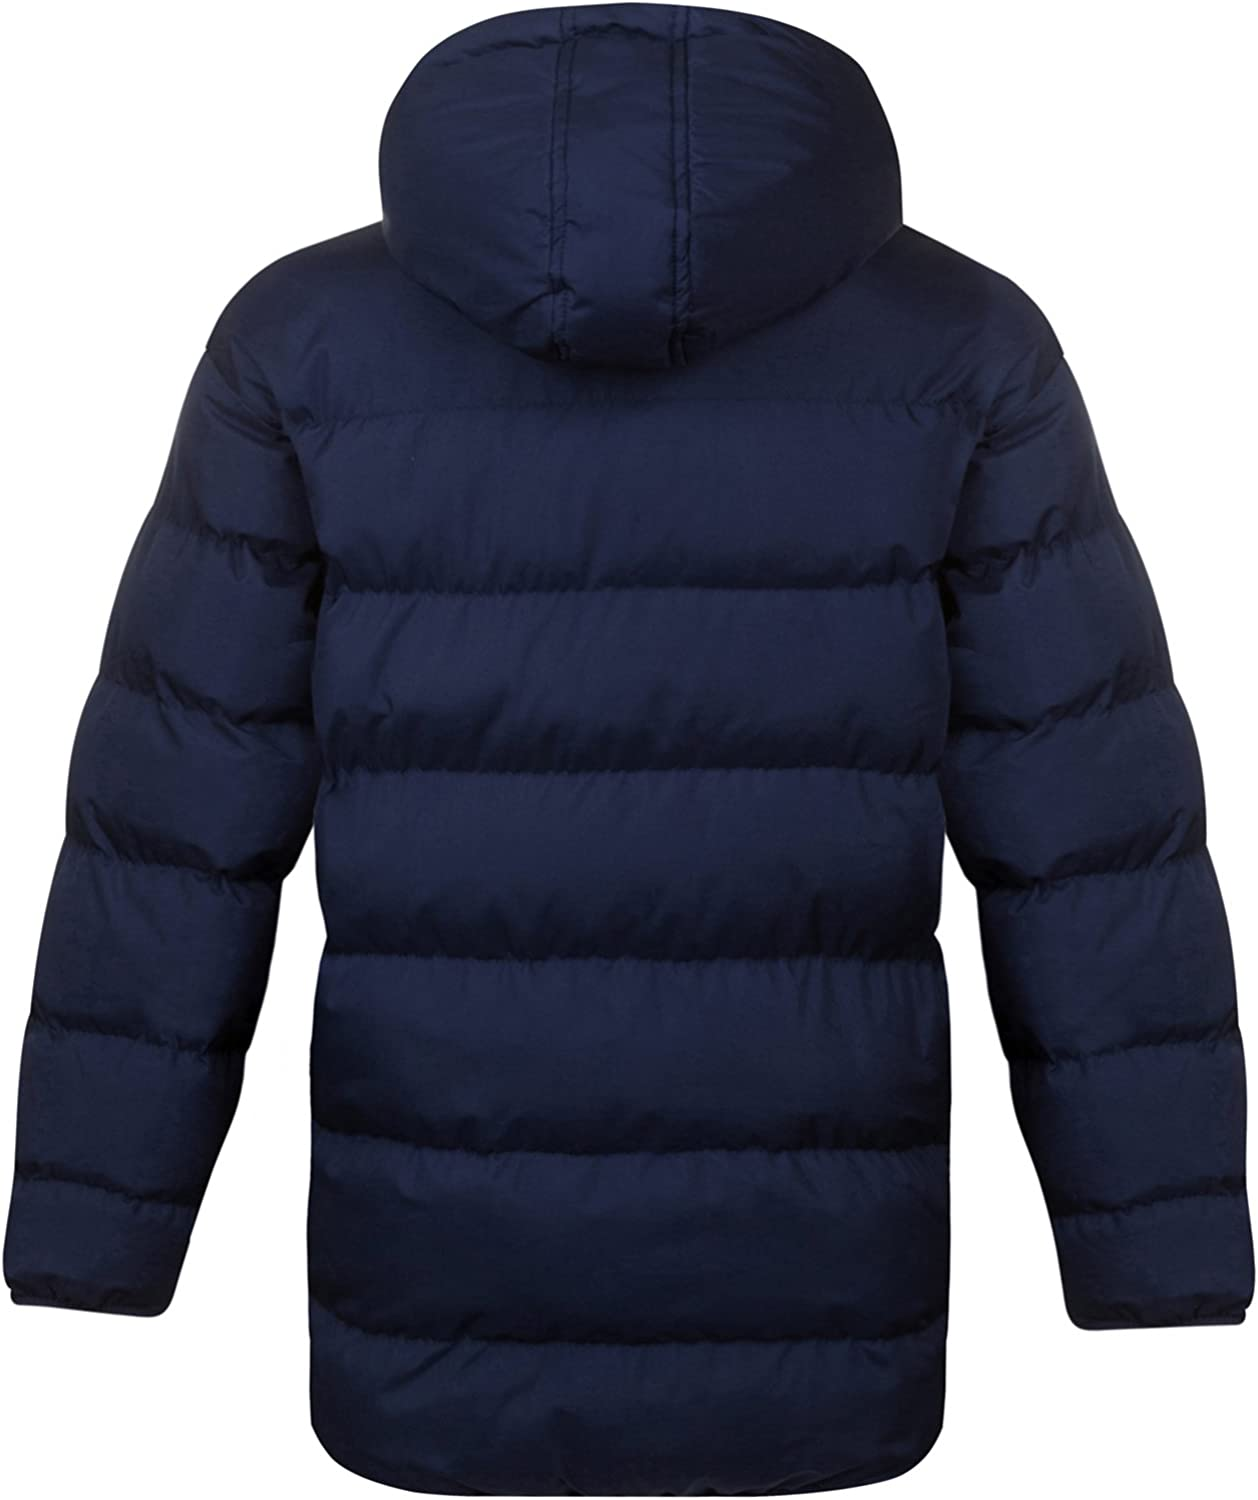 FC Barcelona Official Football Gift Boys Quilted Hooded Winter Jacket